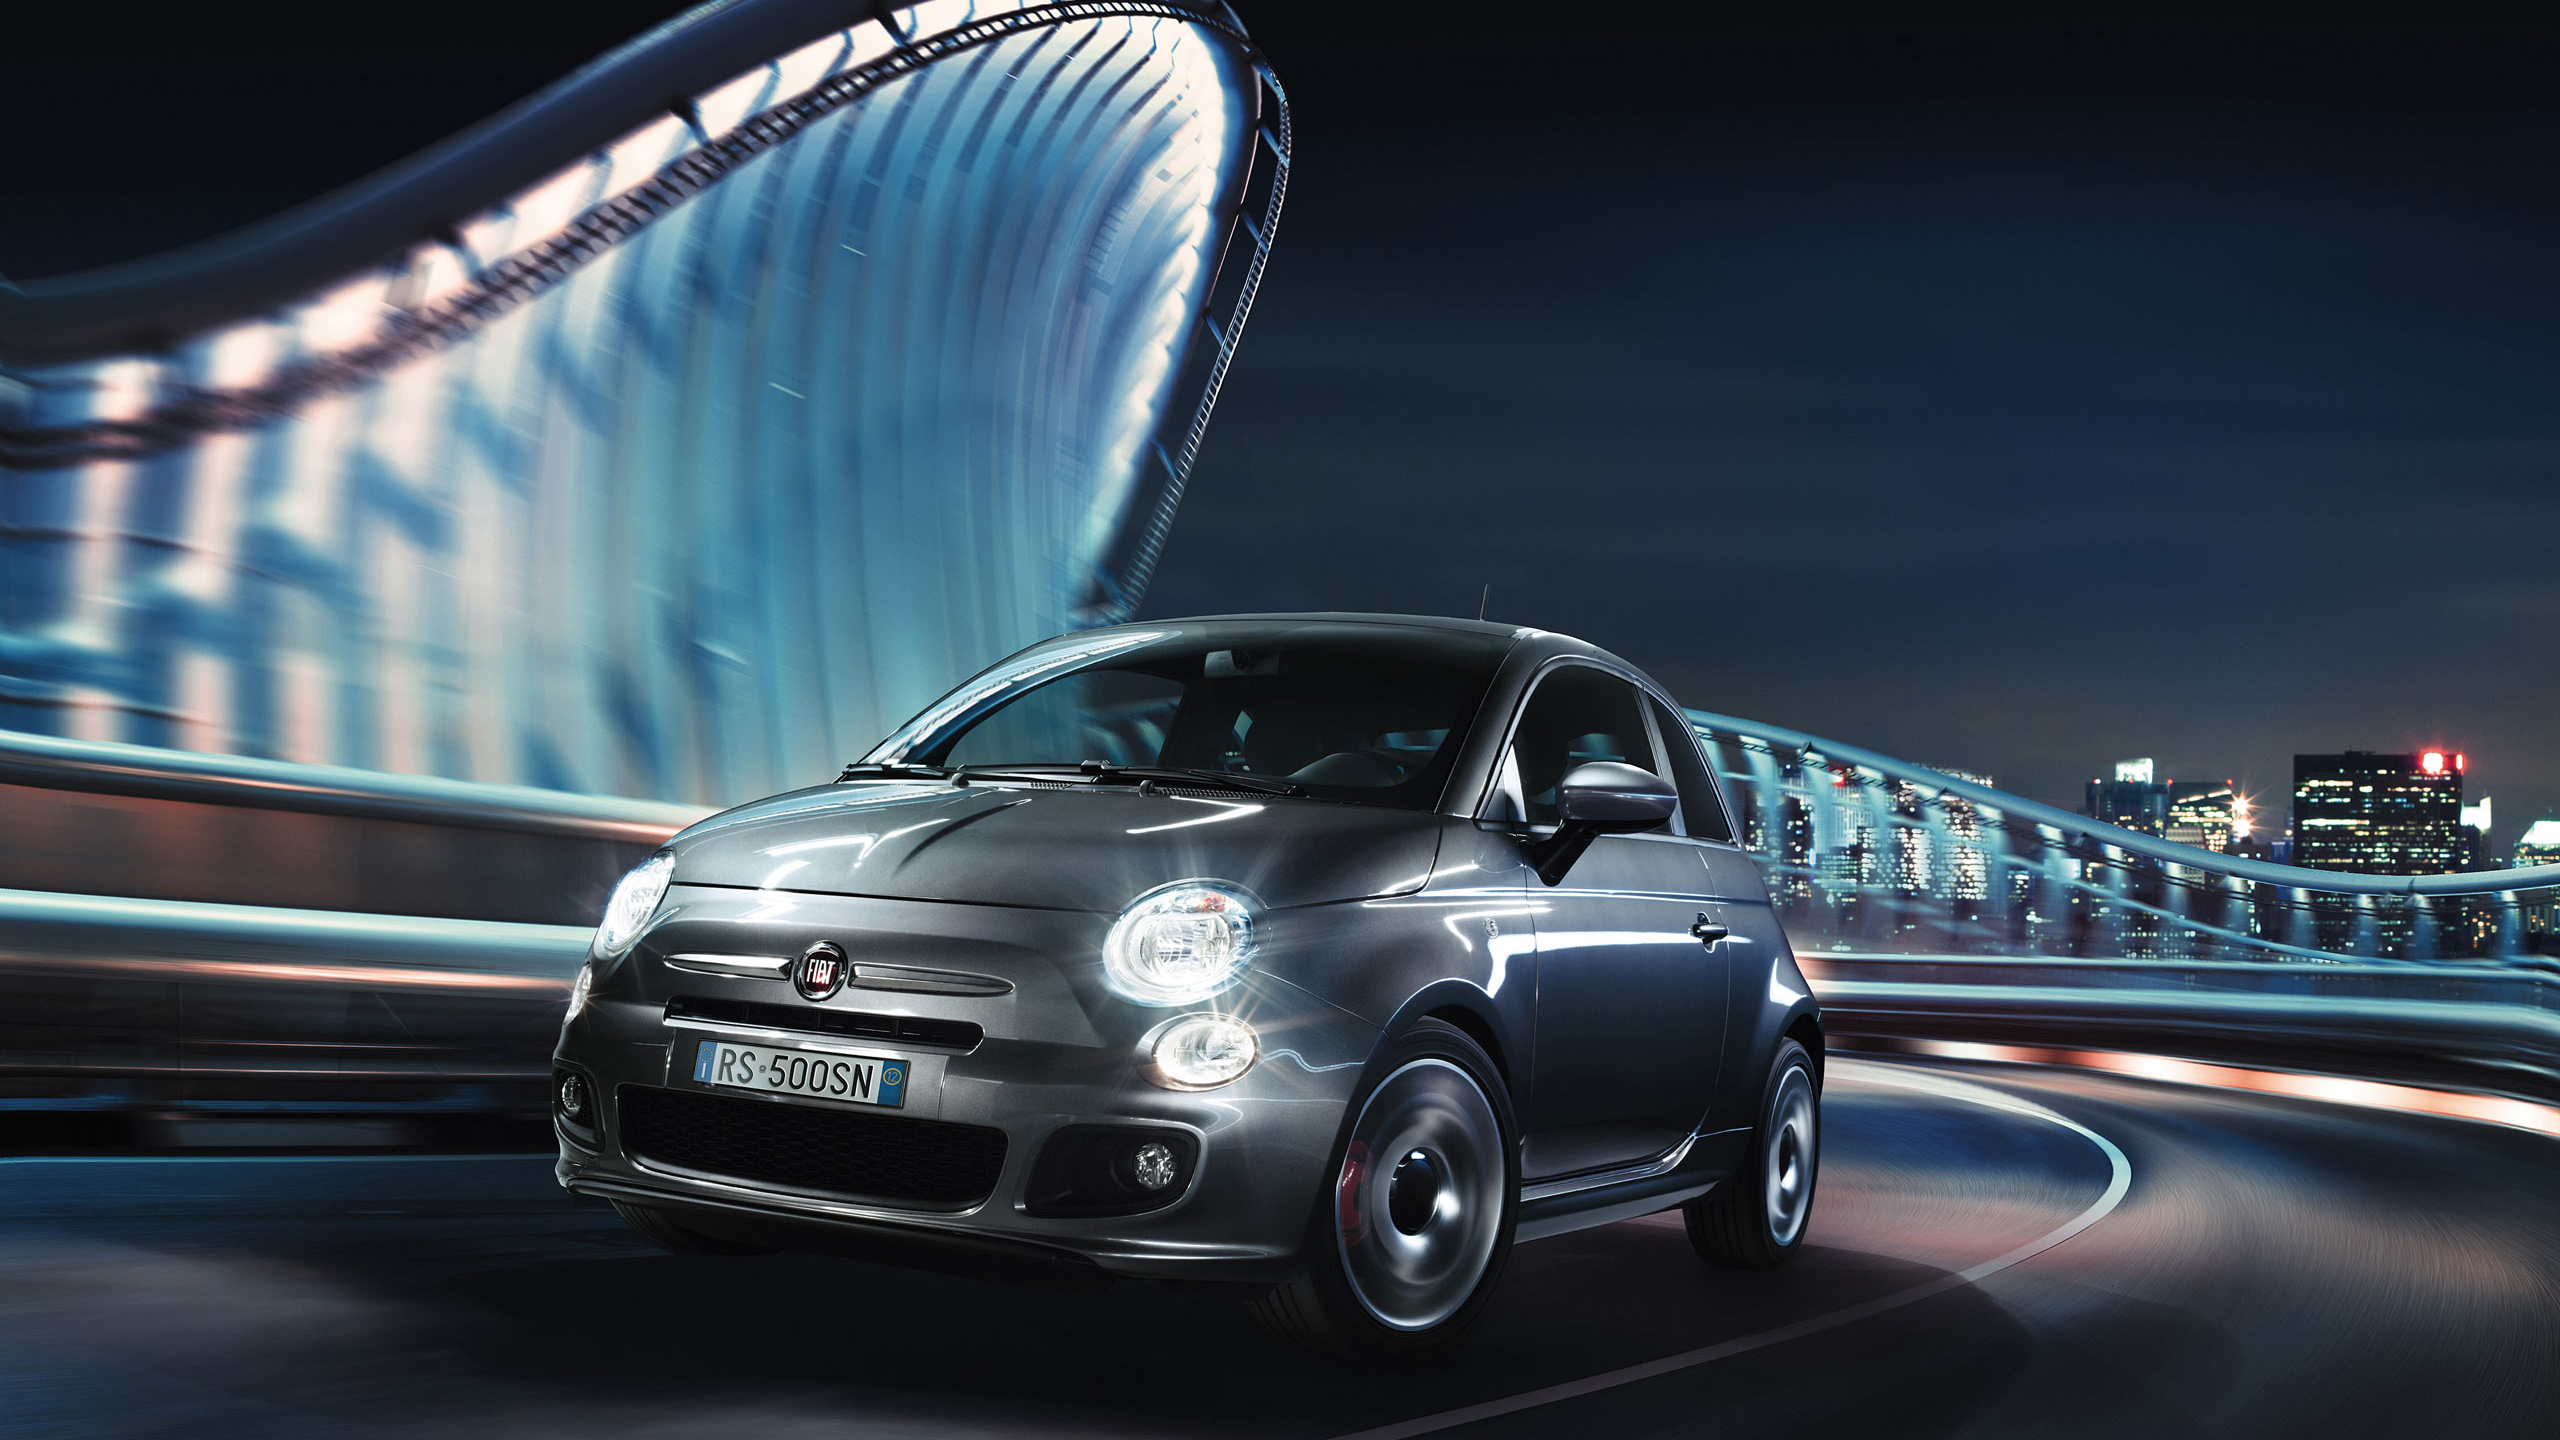 Cool Fiat Wallpaper